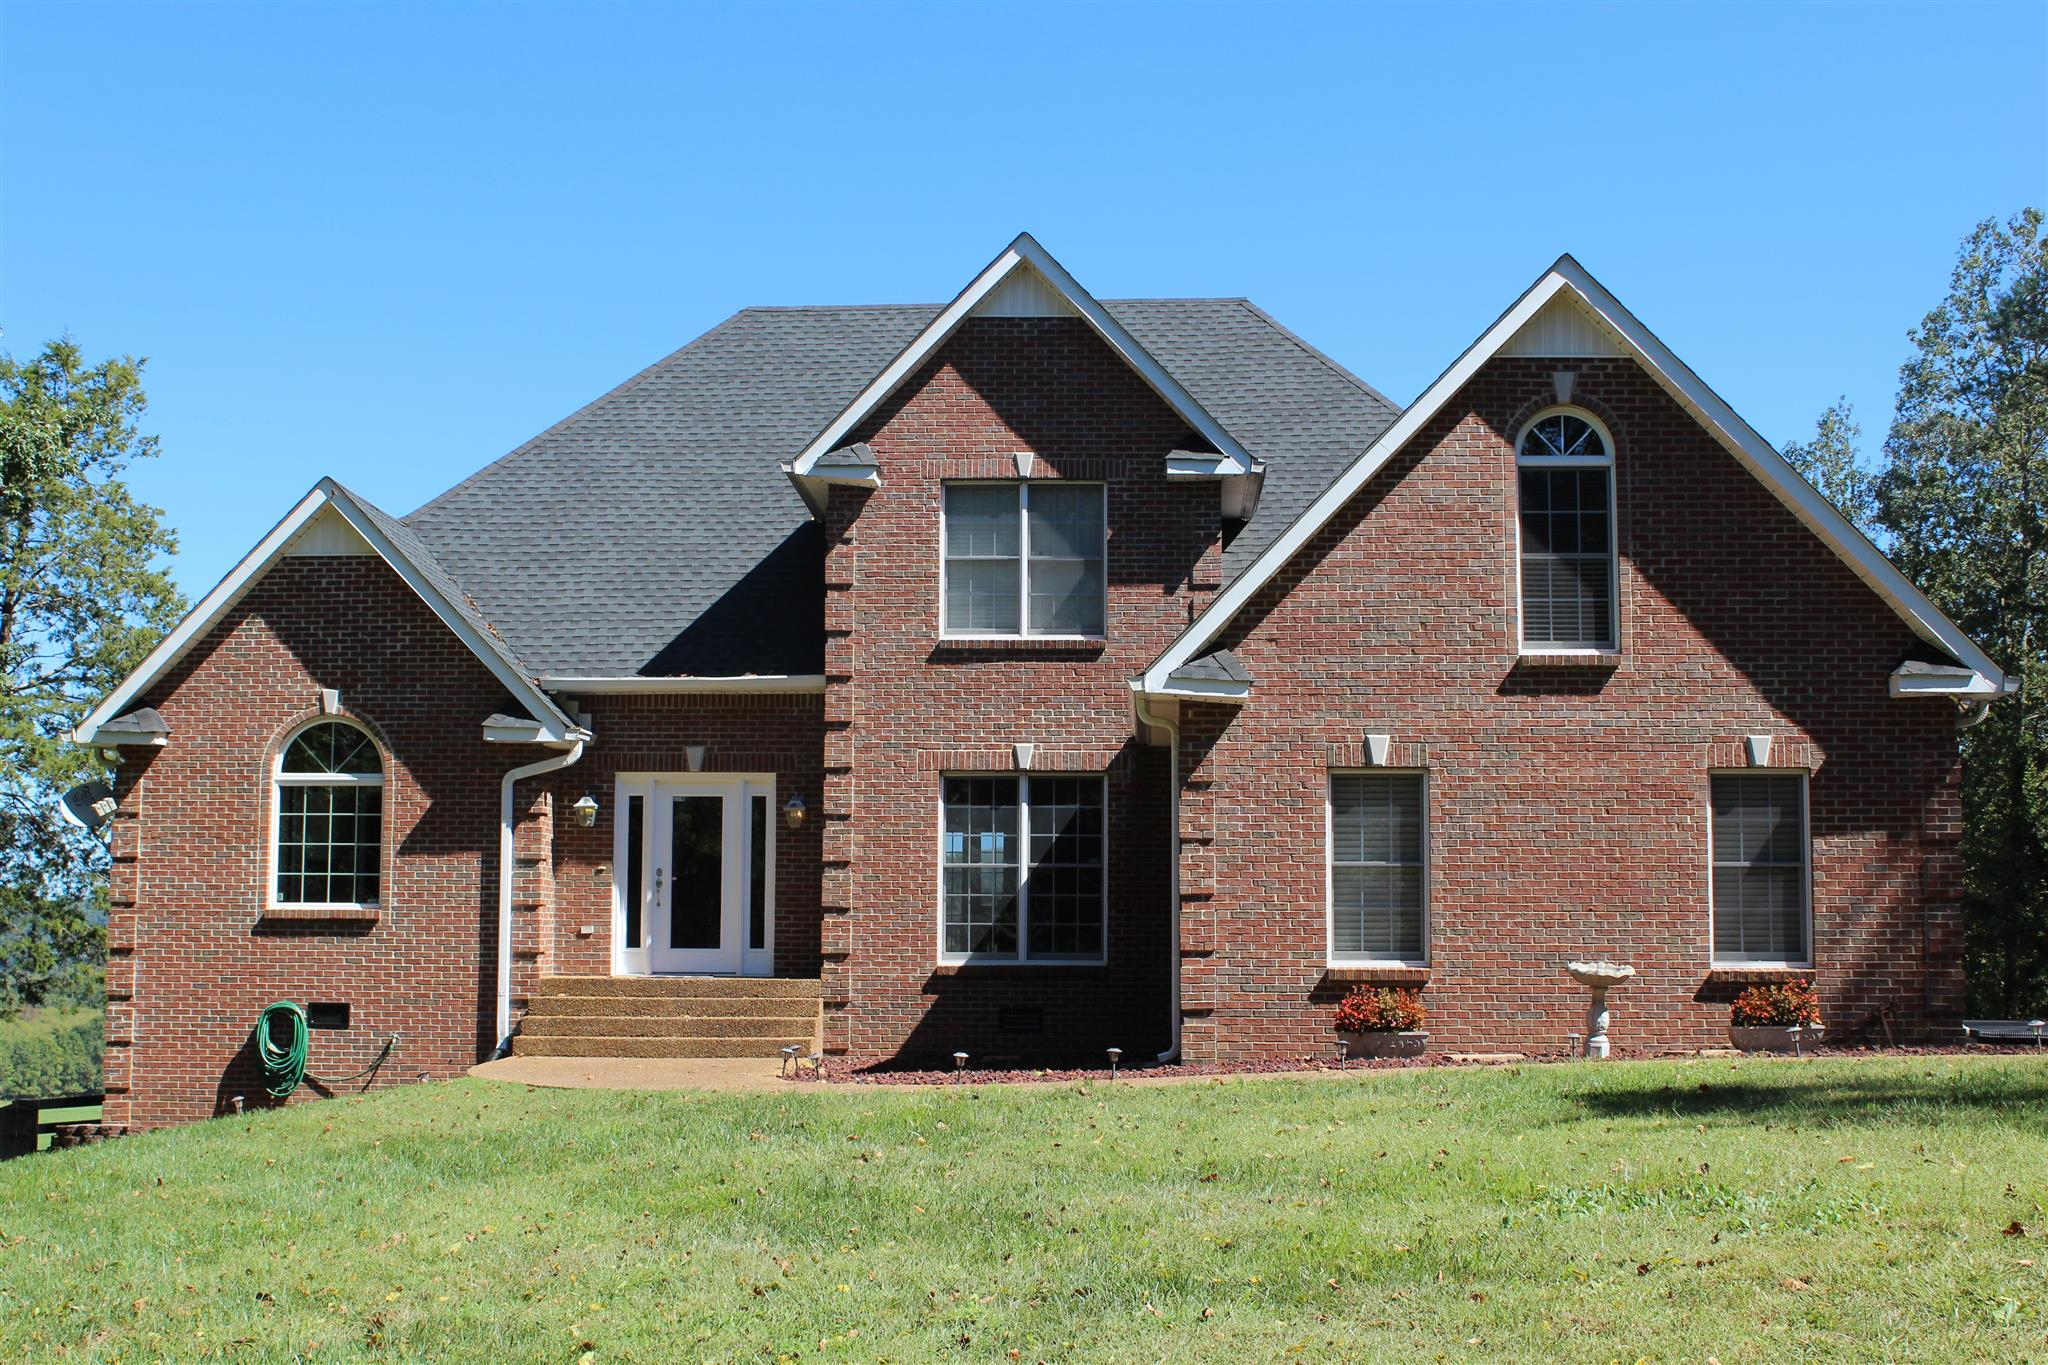 1334 Narrows Of The Harpeth Rd, Kingston Springs, TN 37082